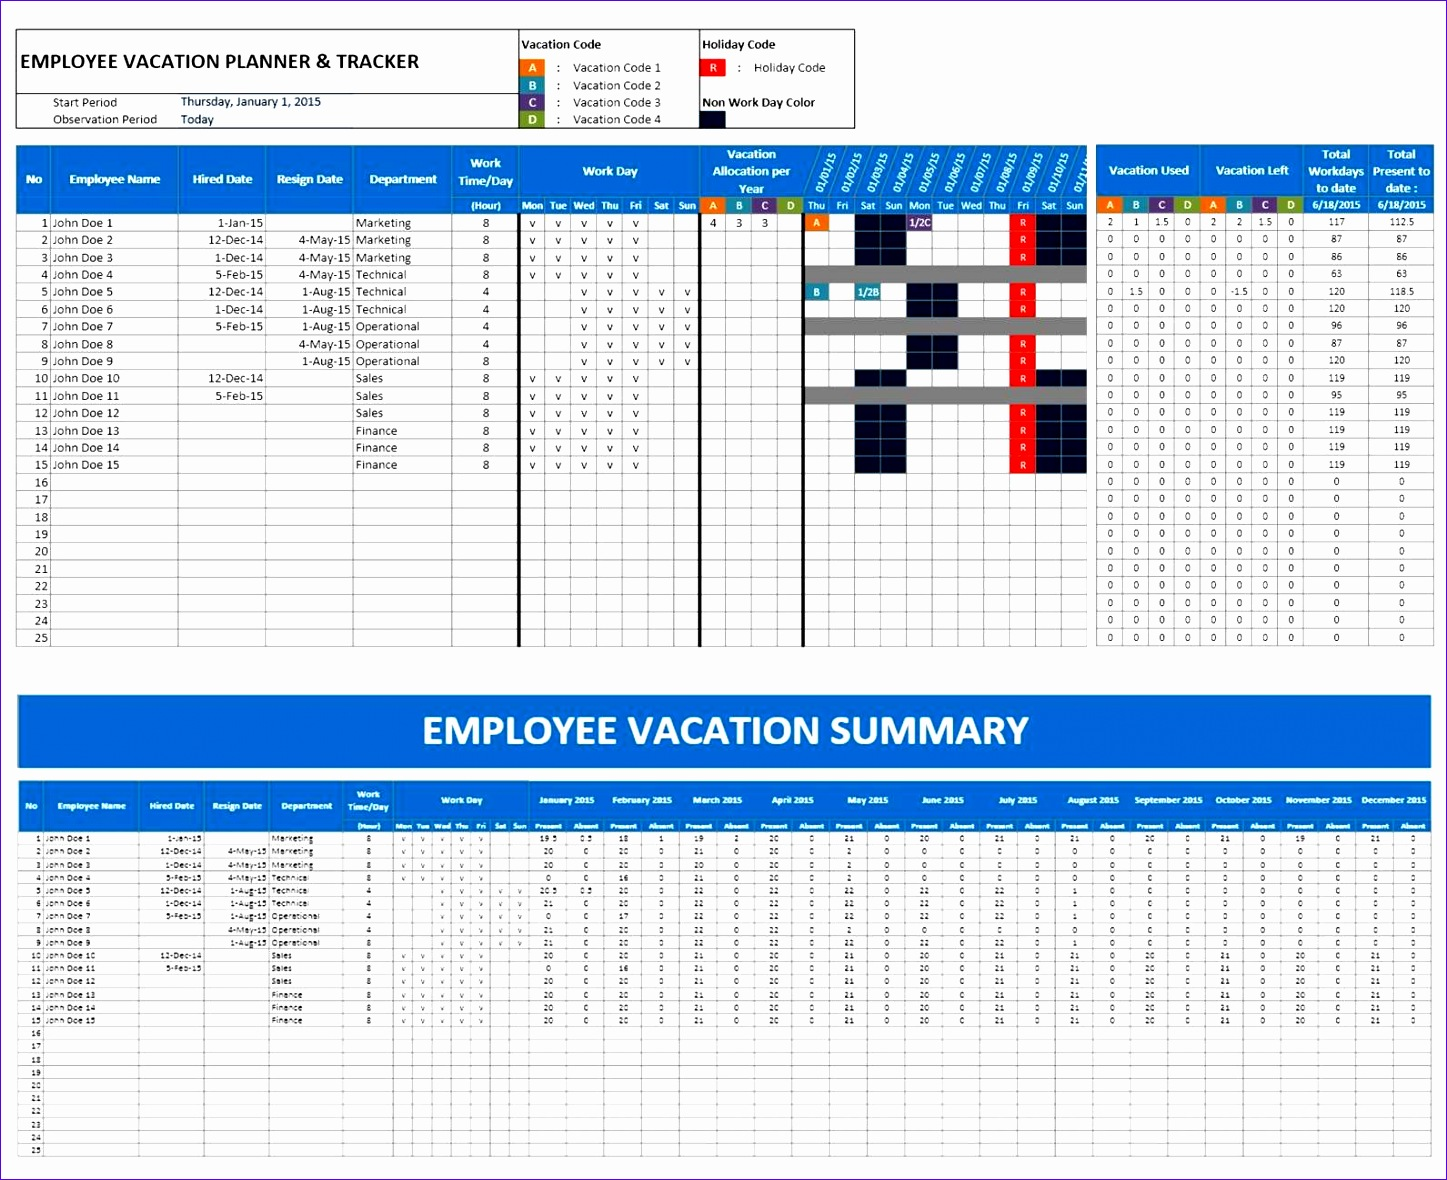 Employee Vacation Planner2